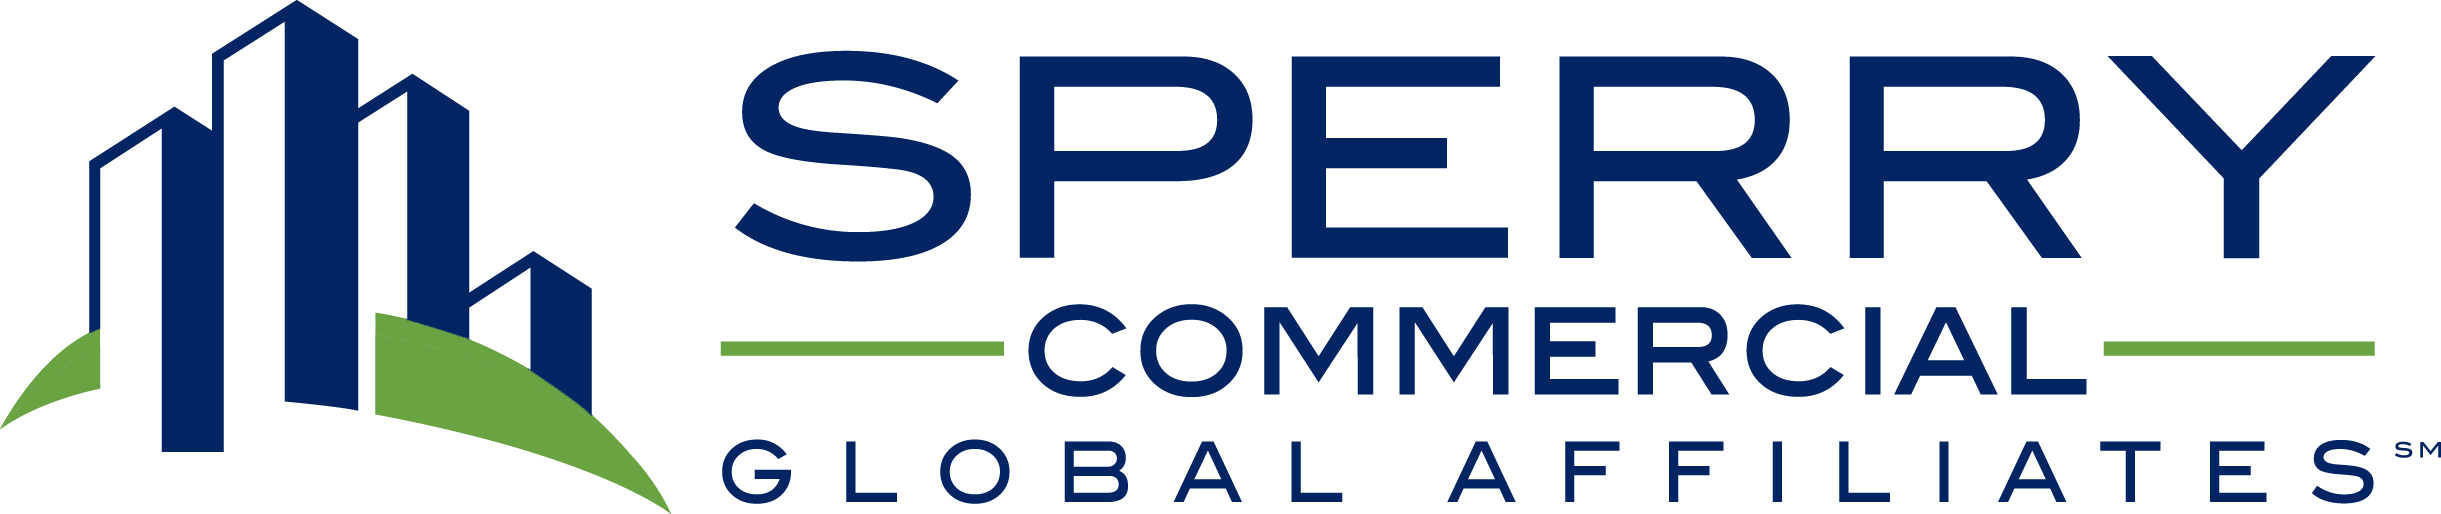 Sperry Commercial Global Affiliates